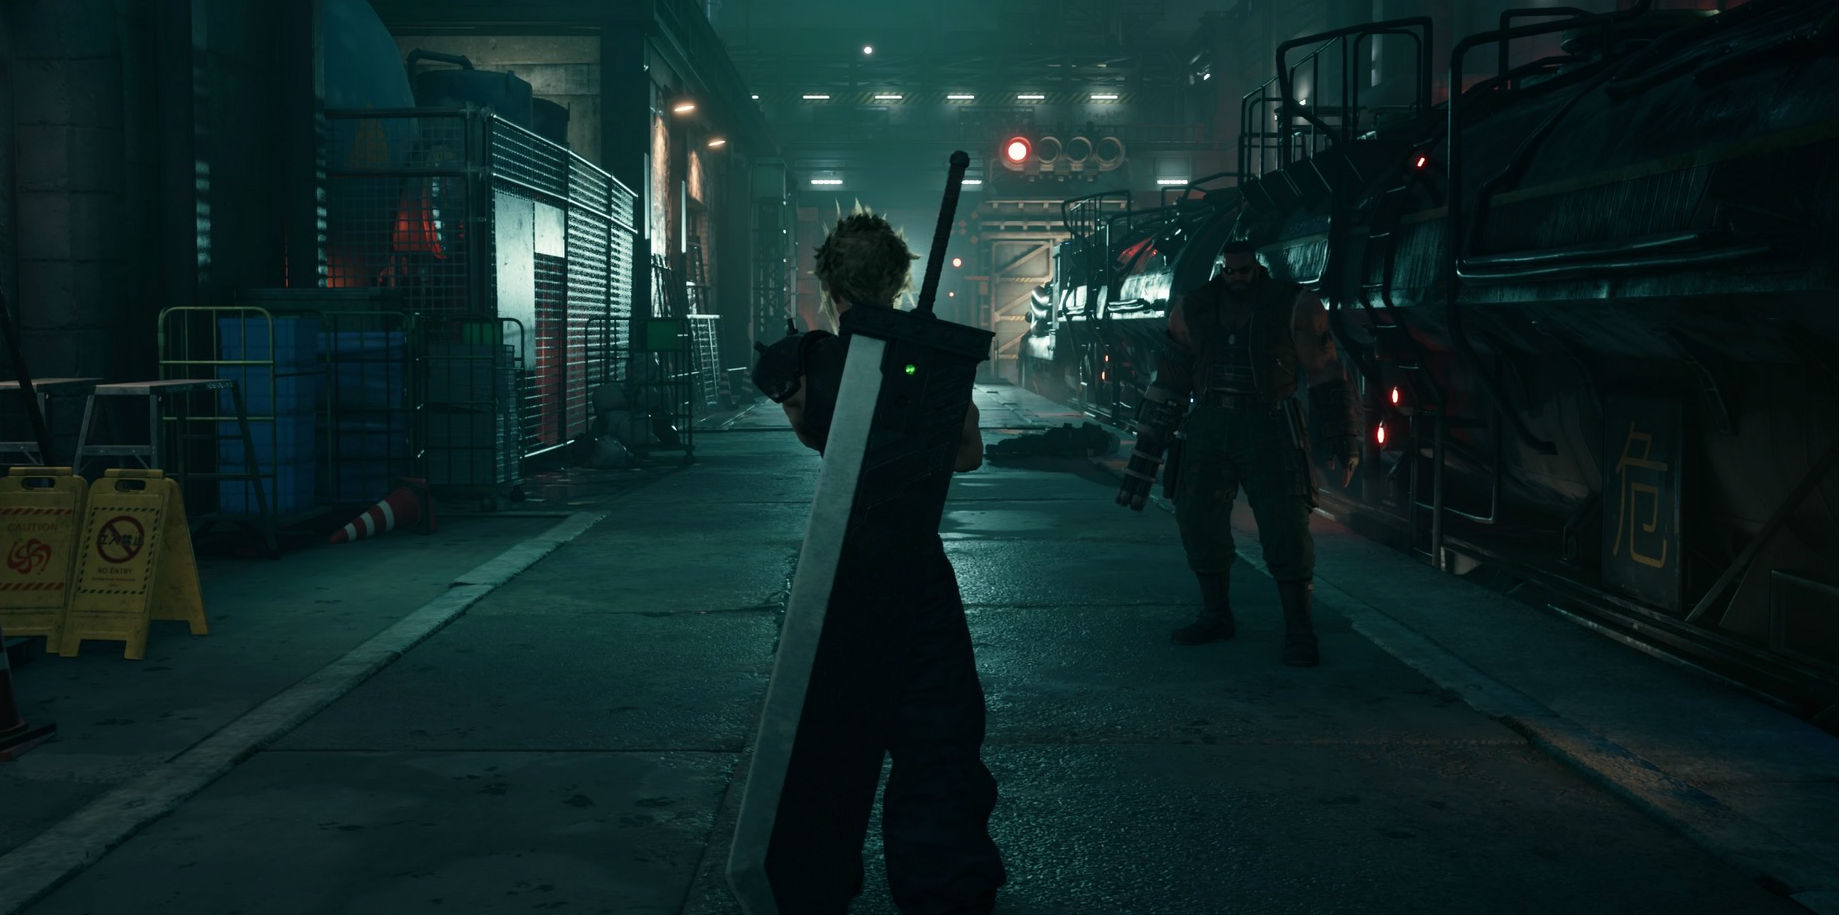 The Final Fantasy VII Remake is everything I hoped it would be, based on the demo screenshot